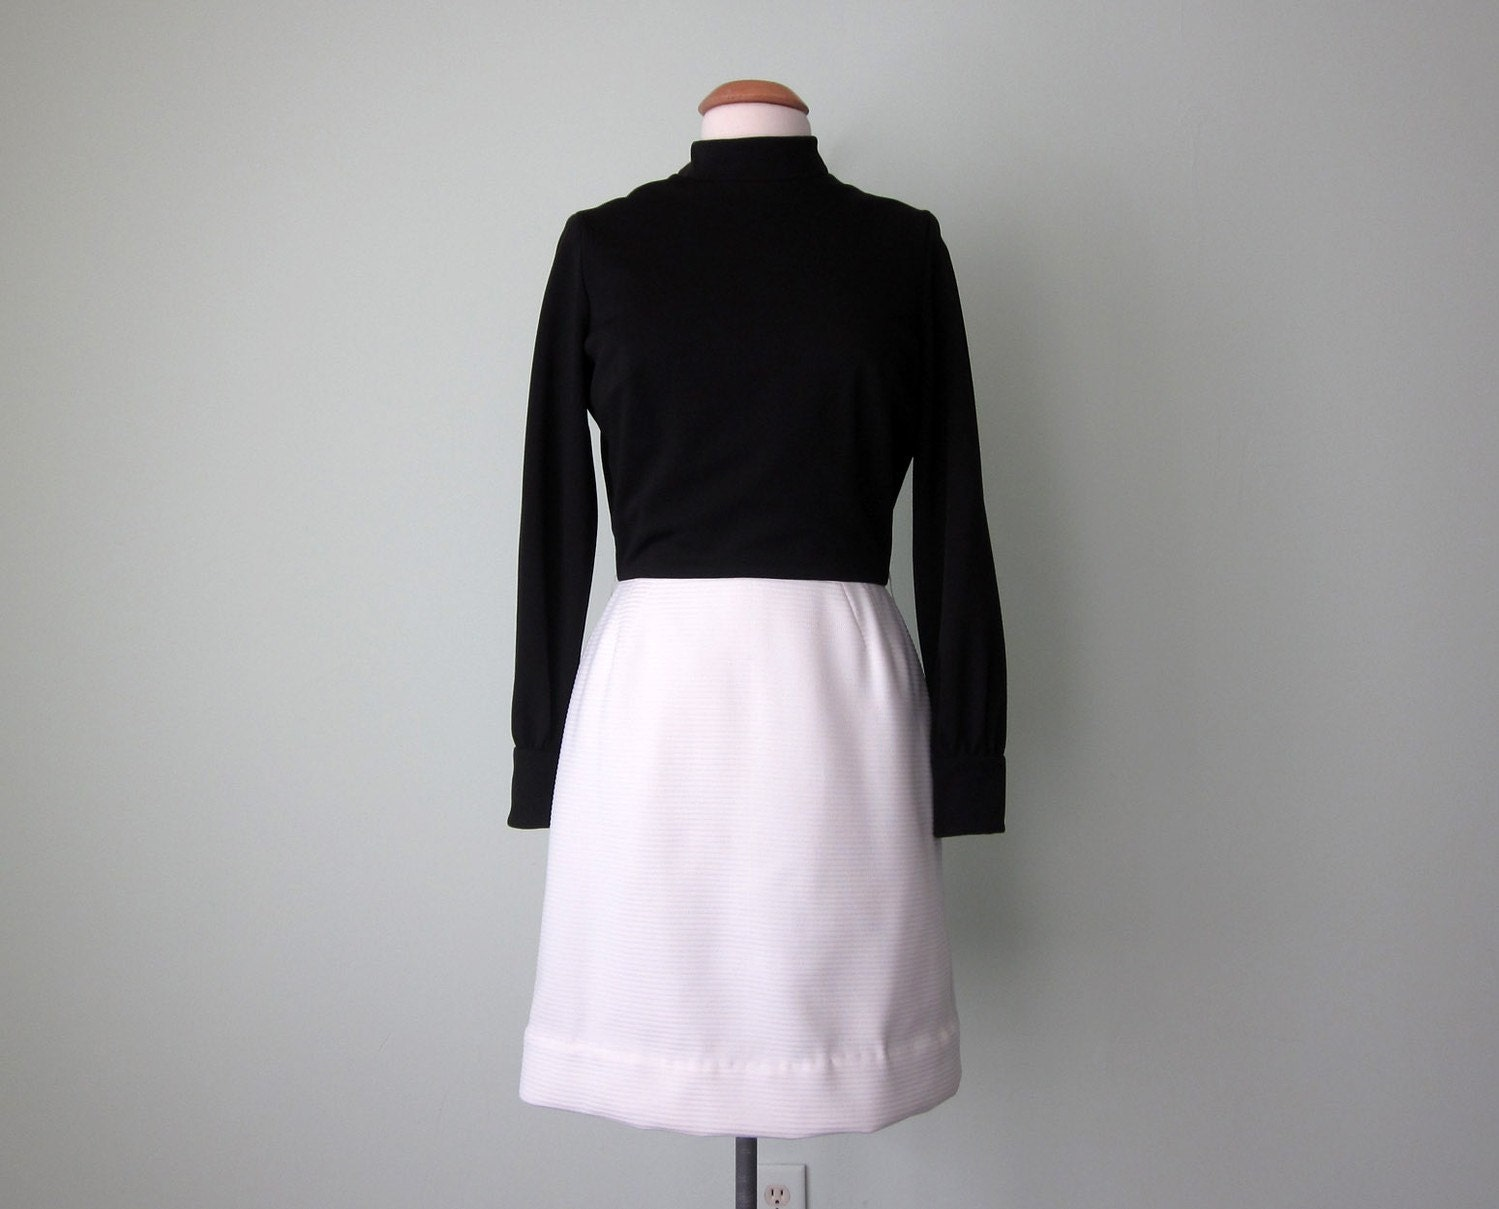 ebony and ivory dress (m - l)